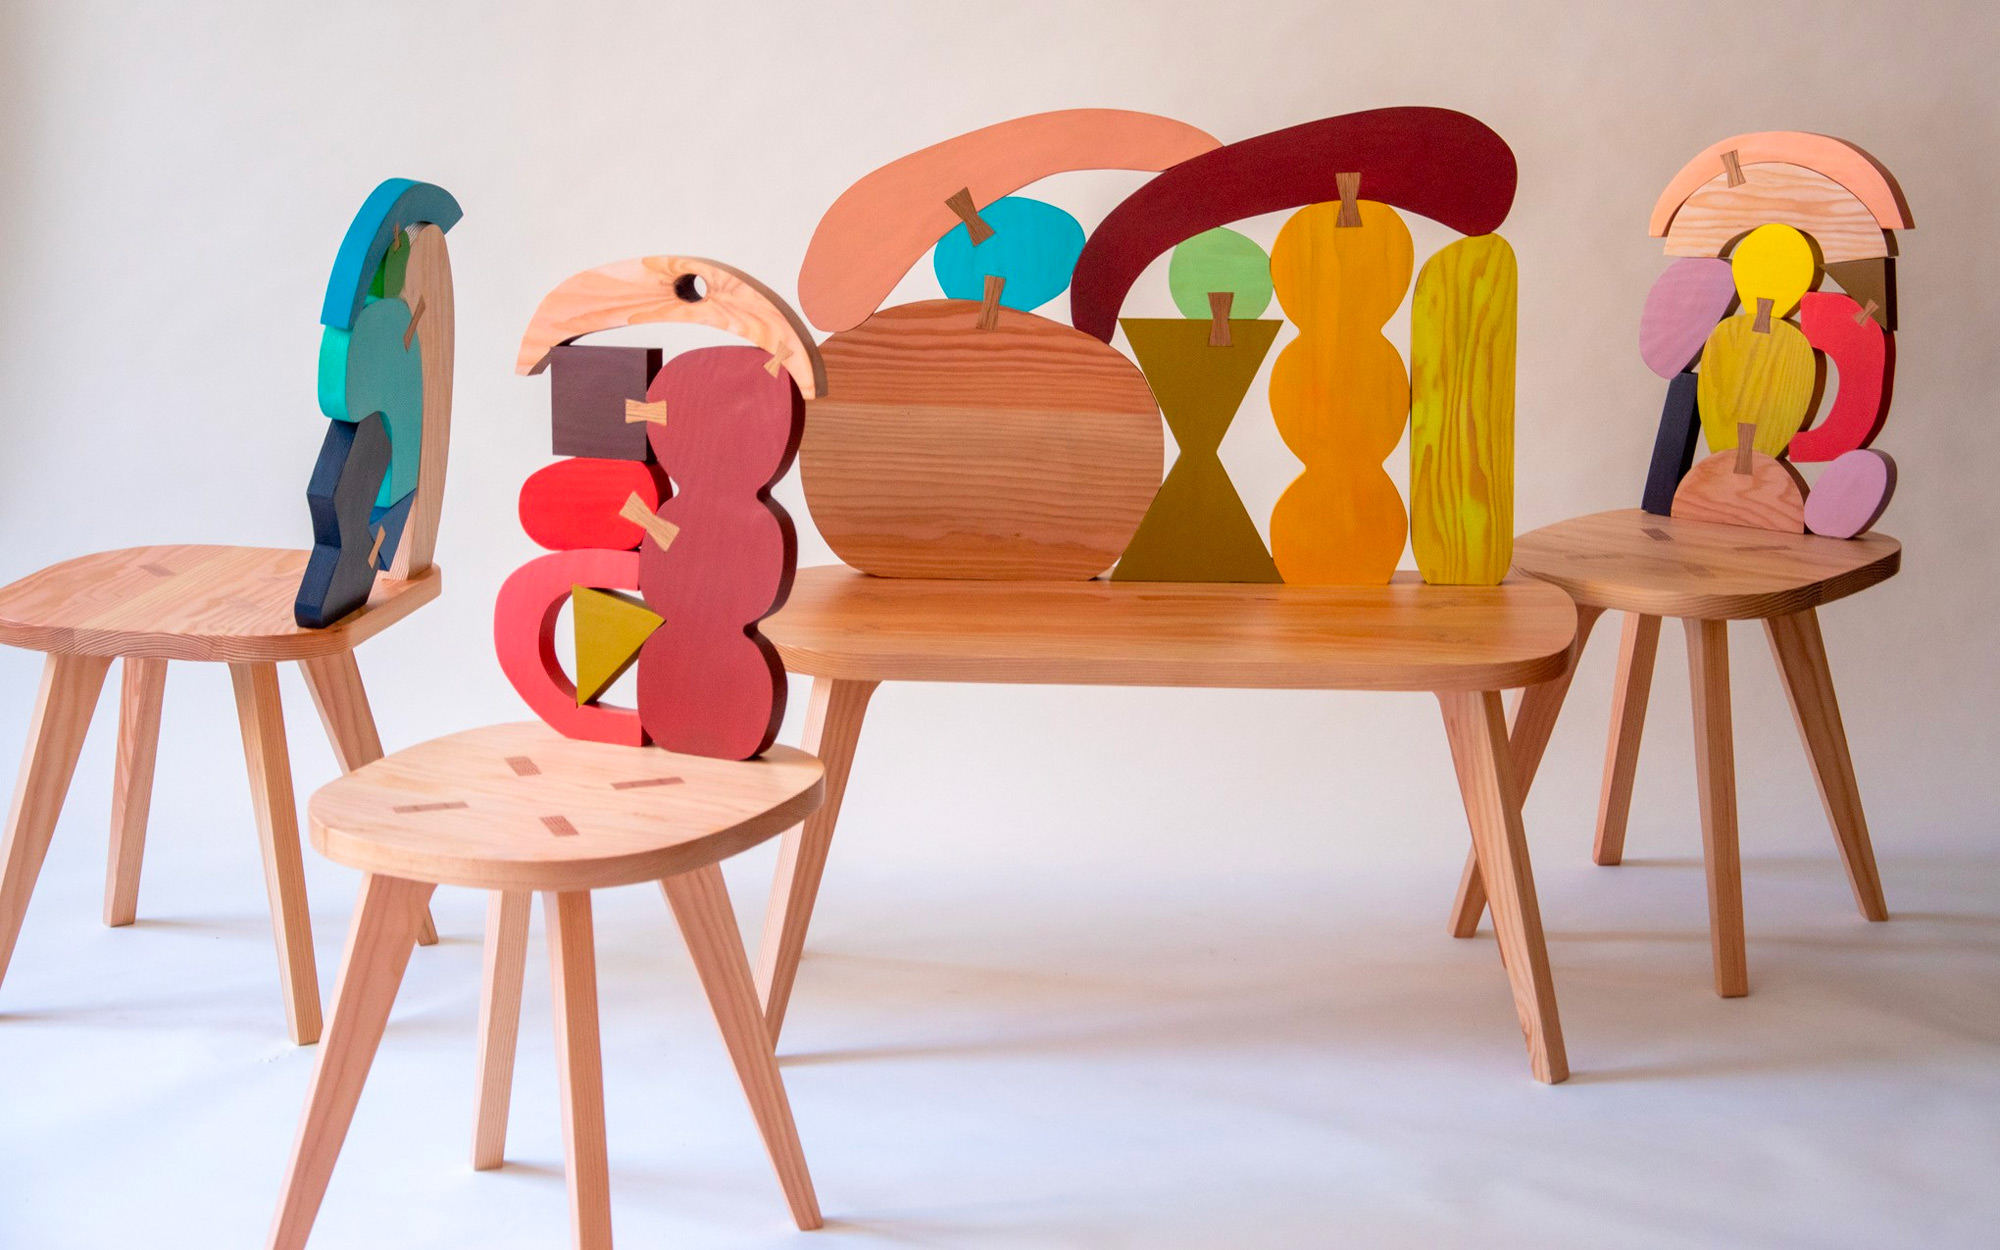 Hand-Painted Wood Offcuts Form Colorful Dovetailed Chairs and Benches by Donna Wilson | Colossal